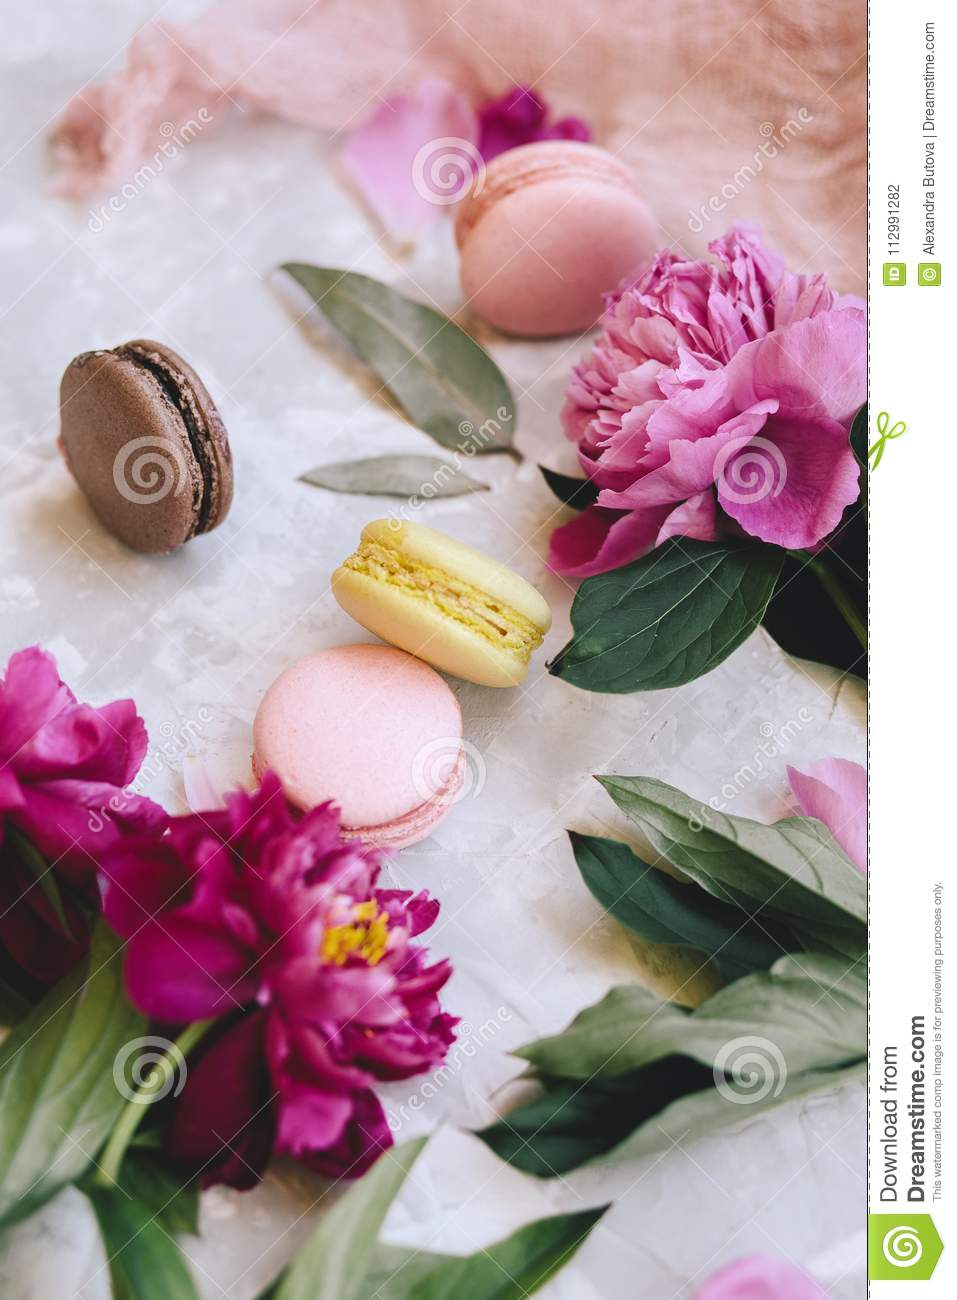 Spring composition: colorful macaroons with purple and pink peonies, green leaves on a light concrete background